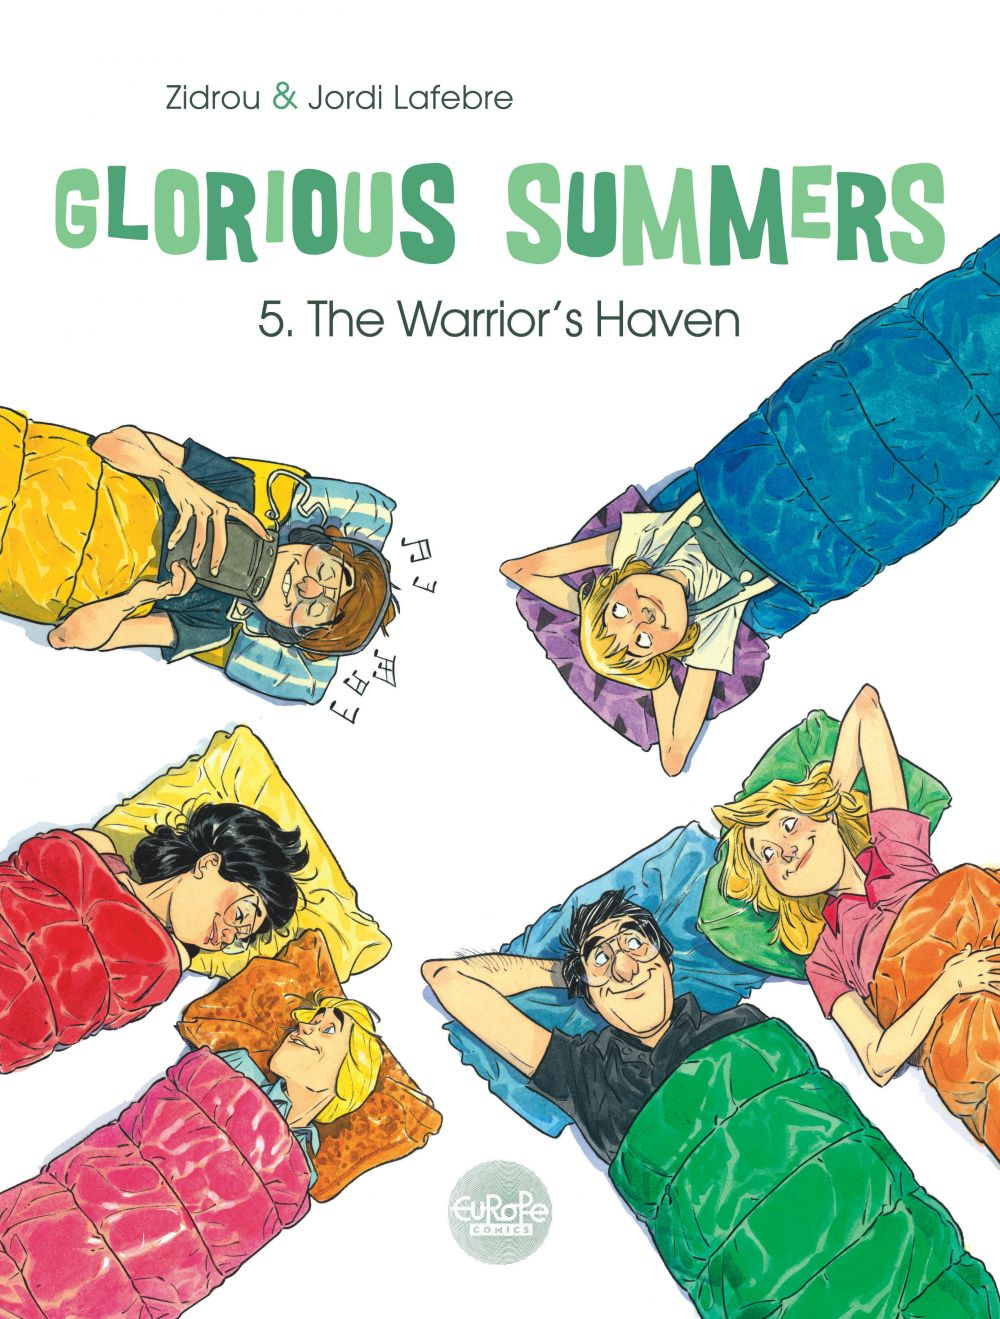 Glorious Summers 5. The Warrior's Haven